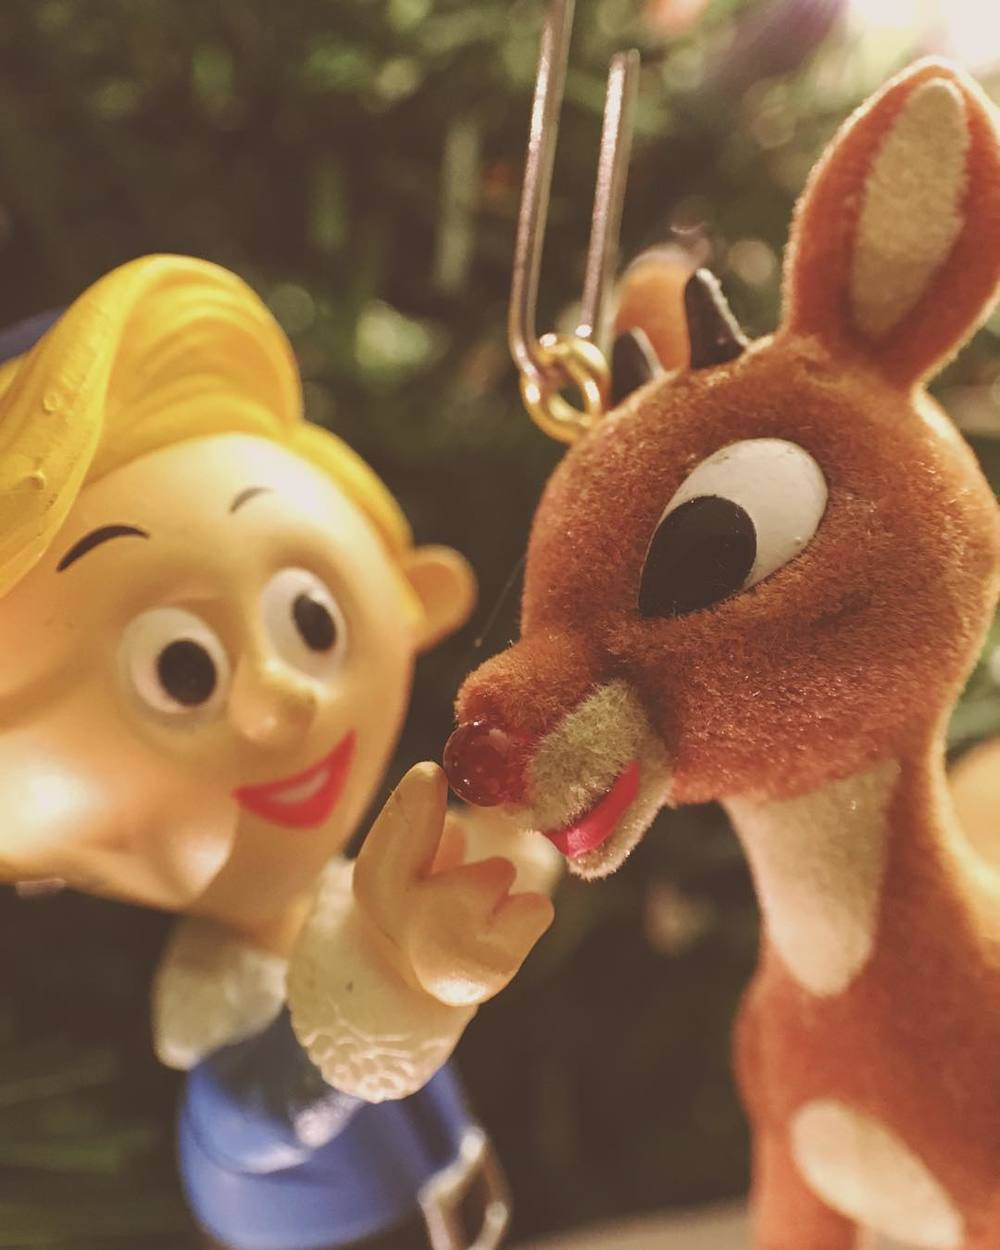 -boop-merry-christmas-everyone-it-still-counts-as-slrwednesdays-week-50-if-i-use-a-nice-macro-lens-on-my-iphone-ya-haha-xmas2015-rudolph-350365_23339249934_o.jpg